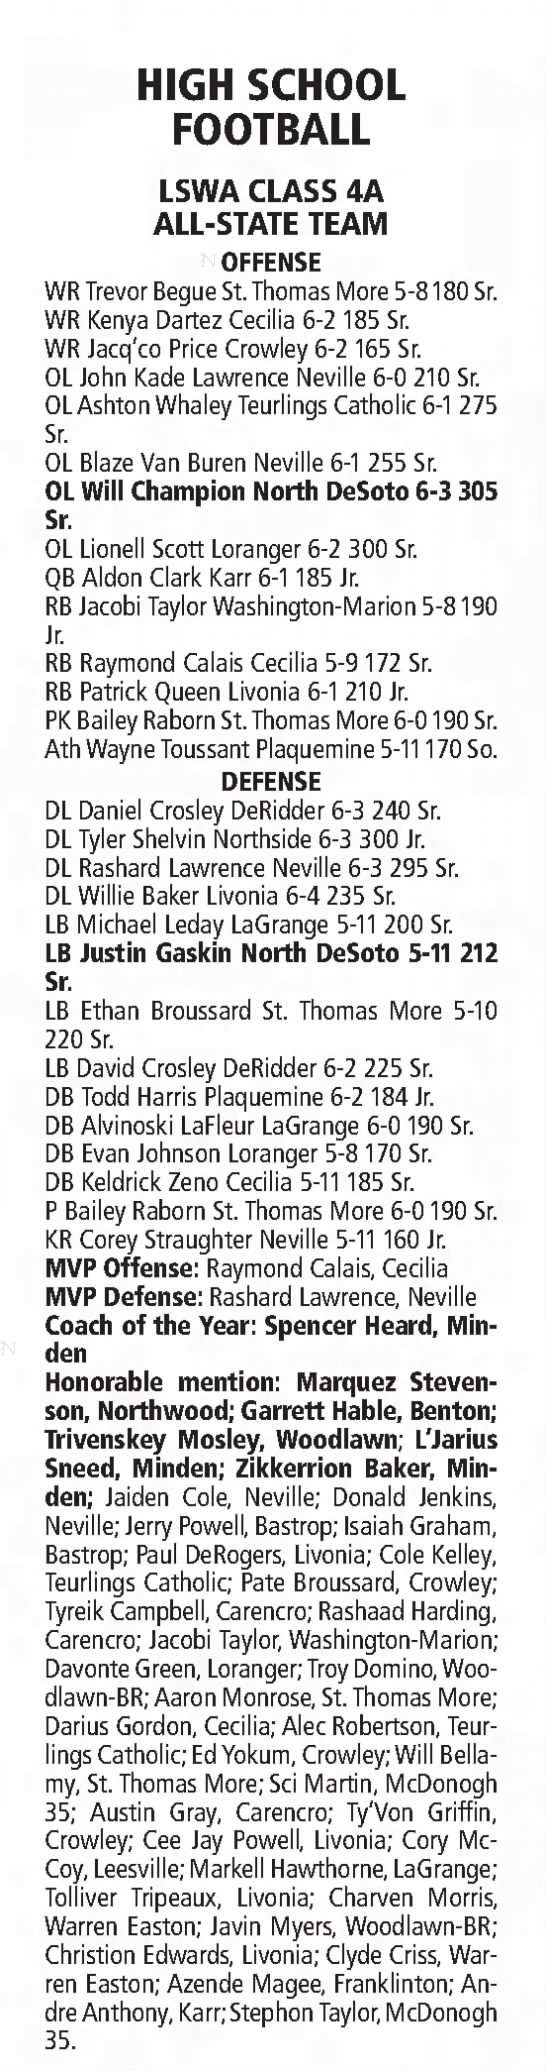 Dec 25 All State 4A - HIGH SCHOOL FOOTBALL LSWA CLASS 4A ALL-STATE...